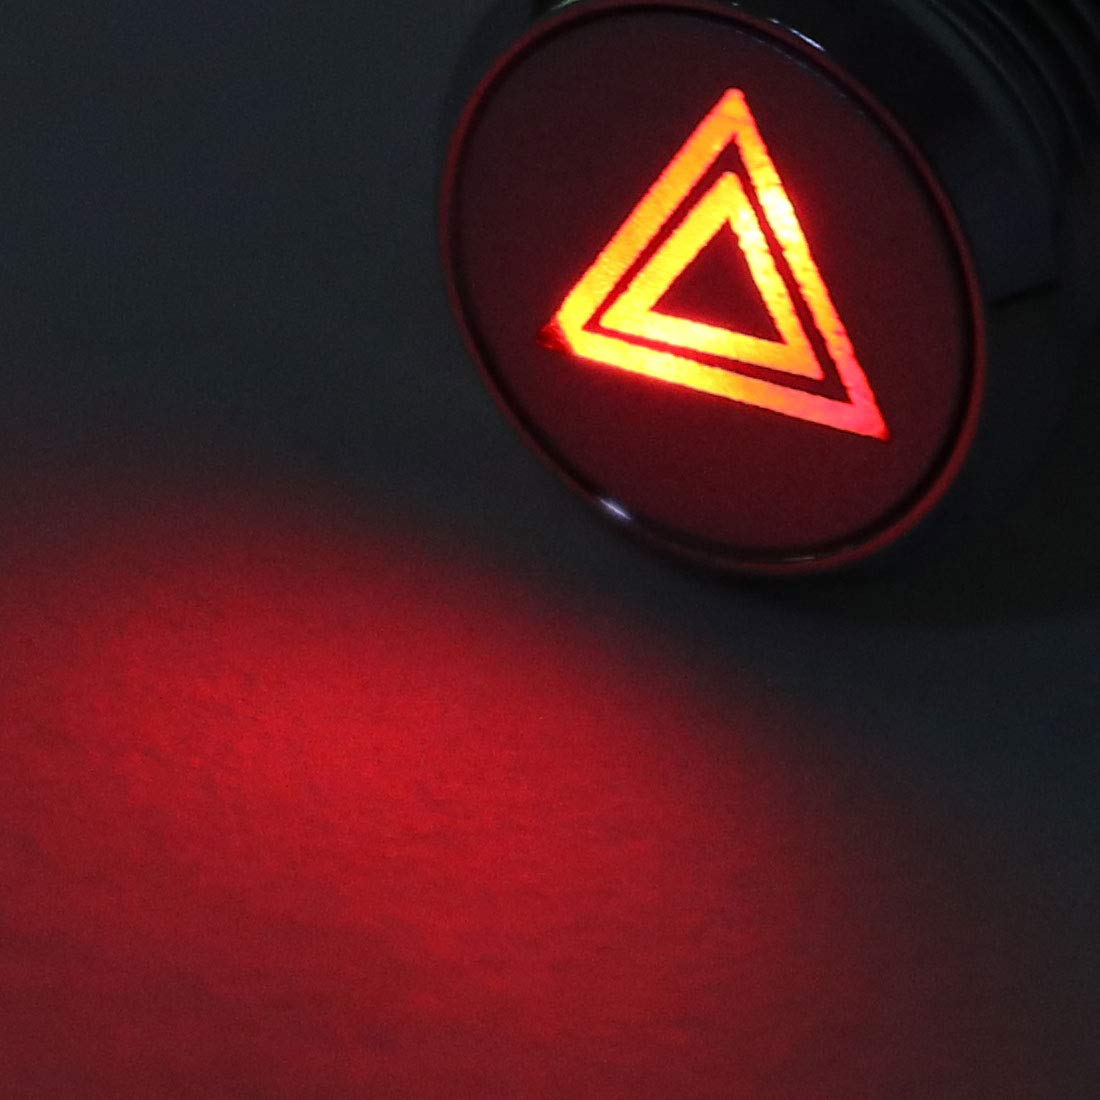 Double Flash uxcell Signal Indicator Light DC 12V 8mm Red LED Metal Shell with Symbol